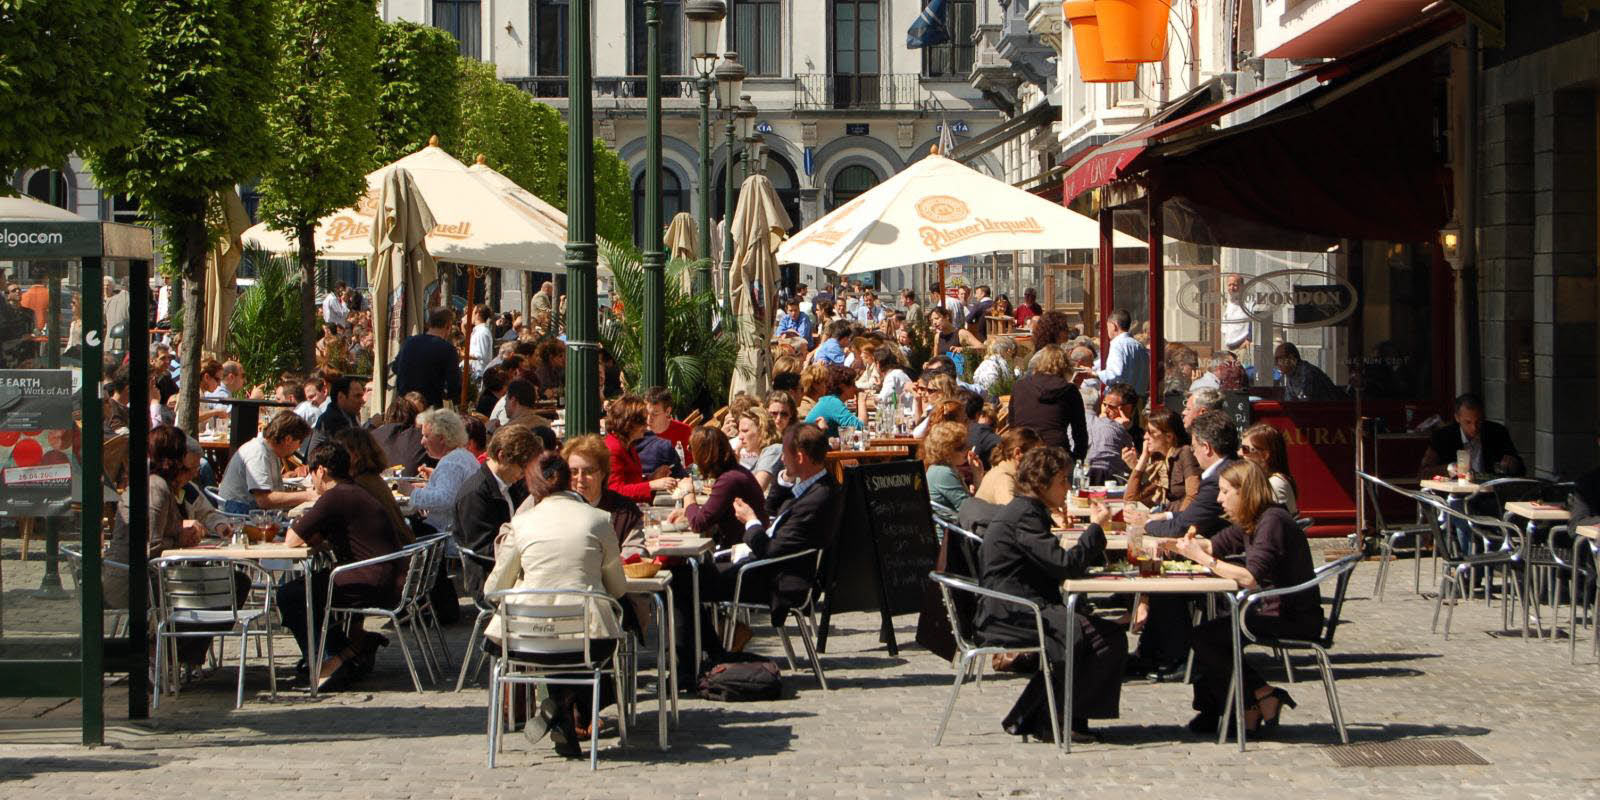 Brussels with outside restaurants and shops in summer weather